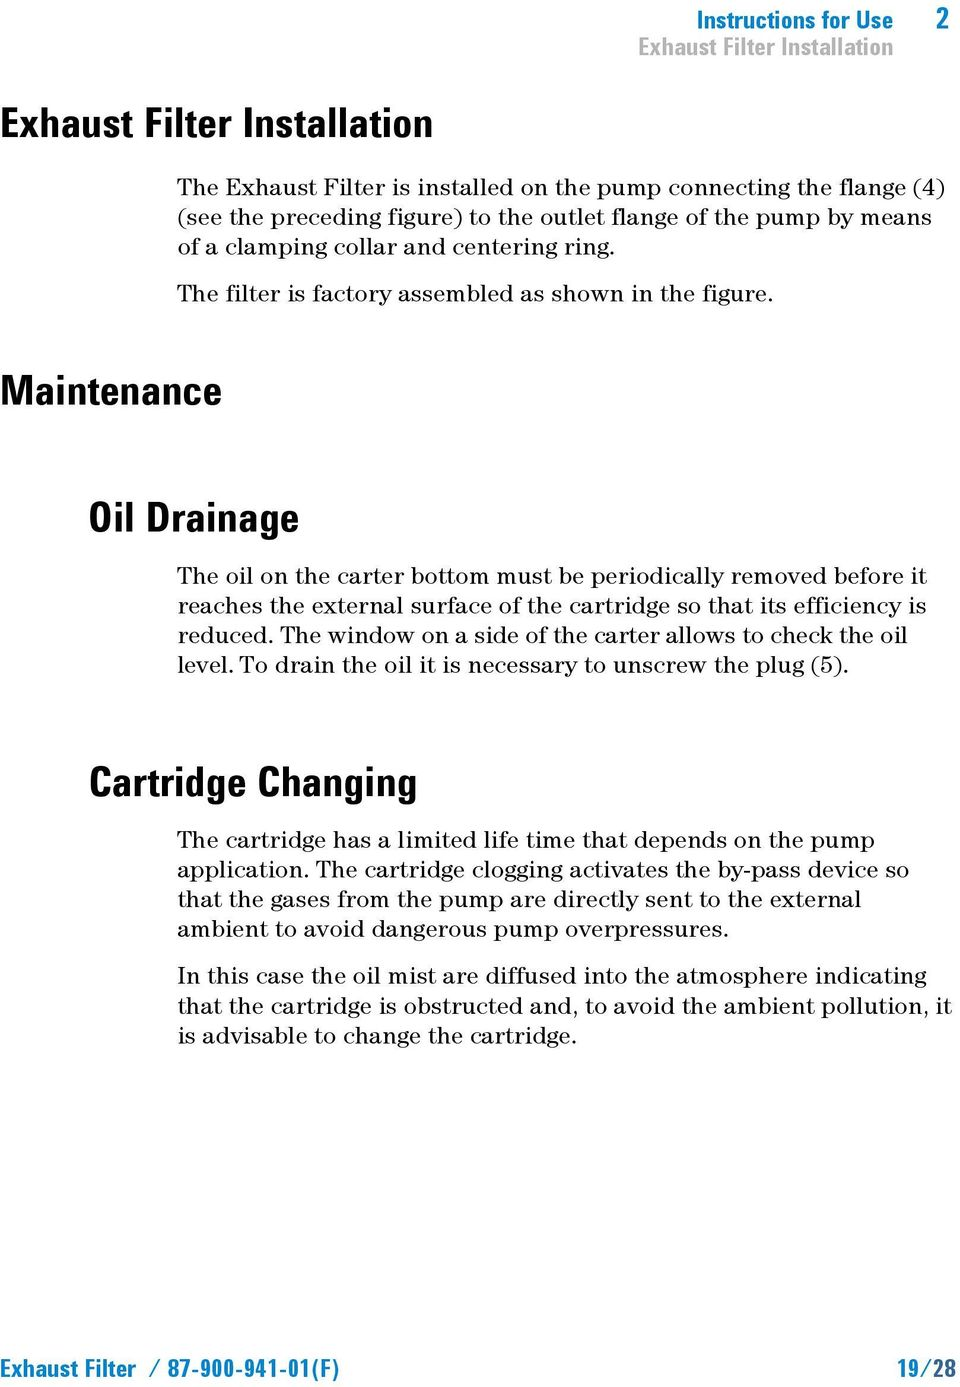 Maintenance Oil Drainage The oil on the carter bottom must be periodically removed before it reaches the external surface of the cartridge so that its efficiency is reduced.